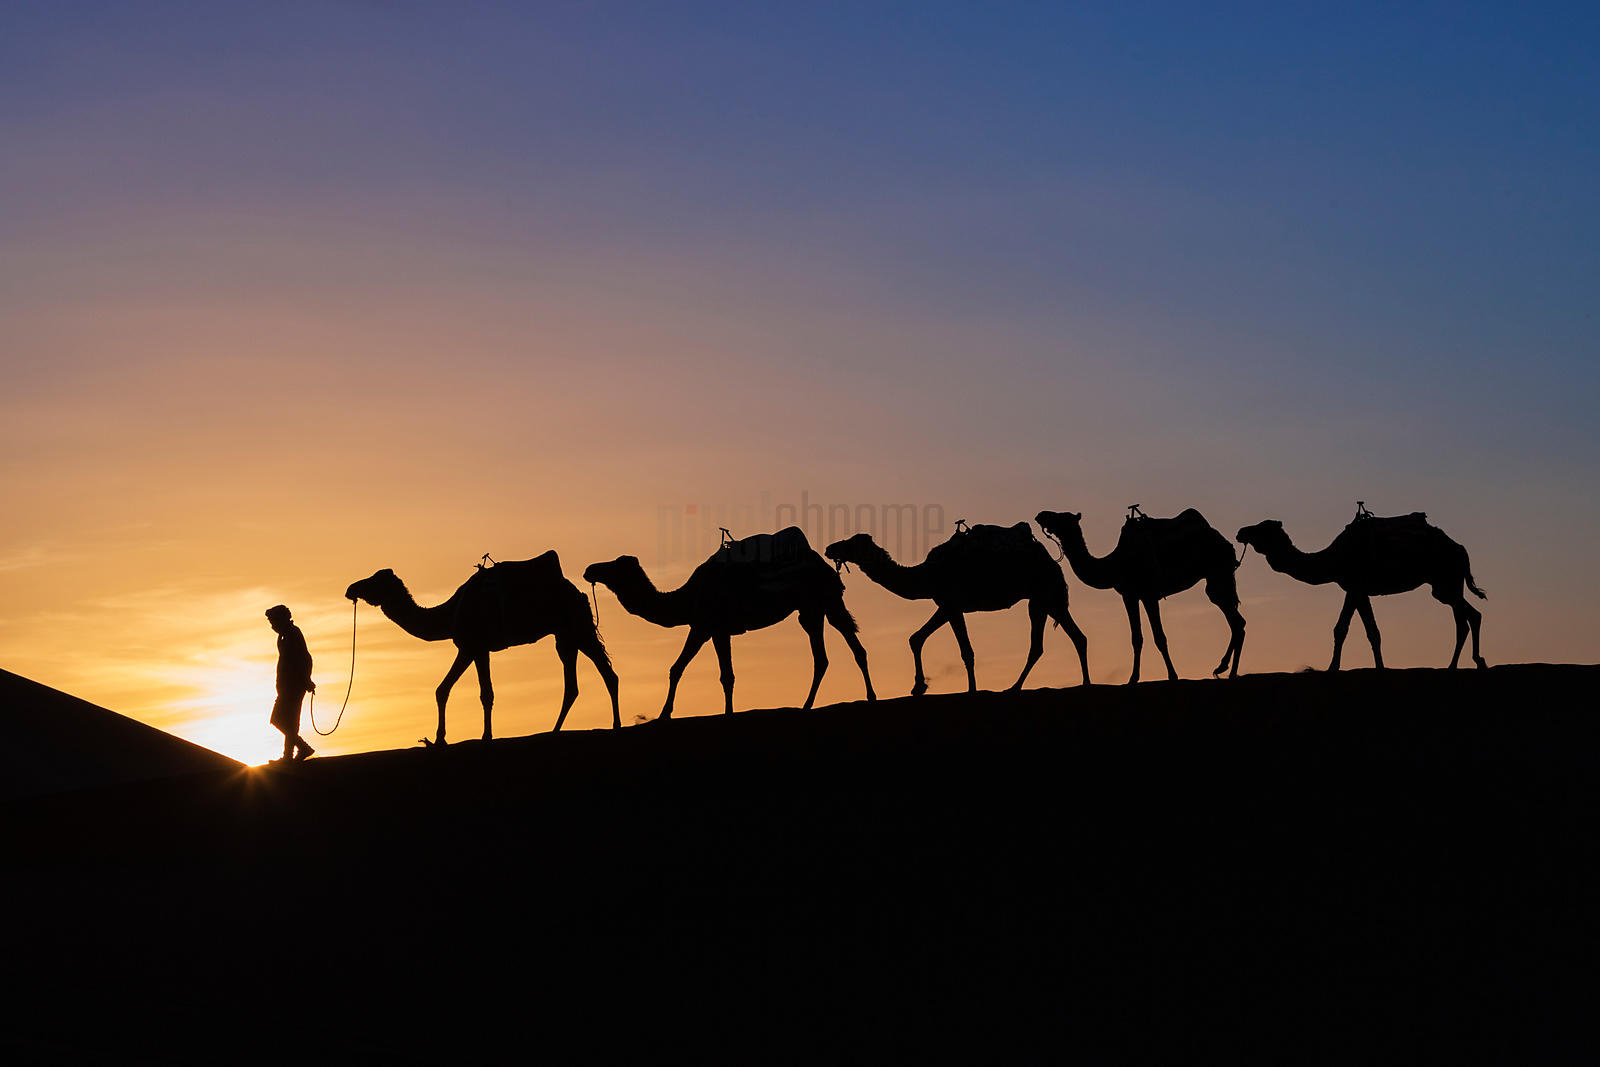 A Berber Leads a String of Camels through the Sahara Desert at Sunset